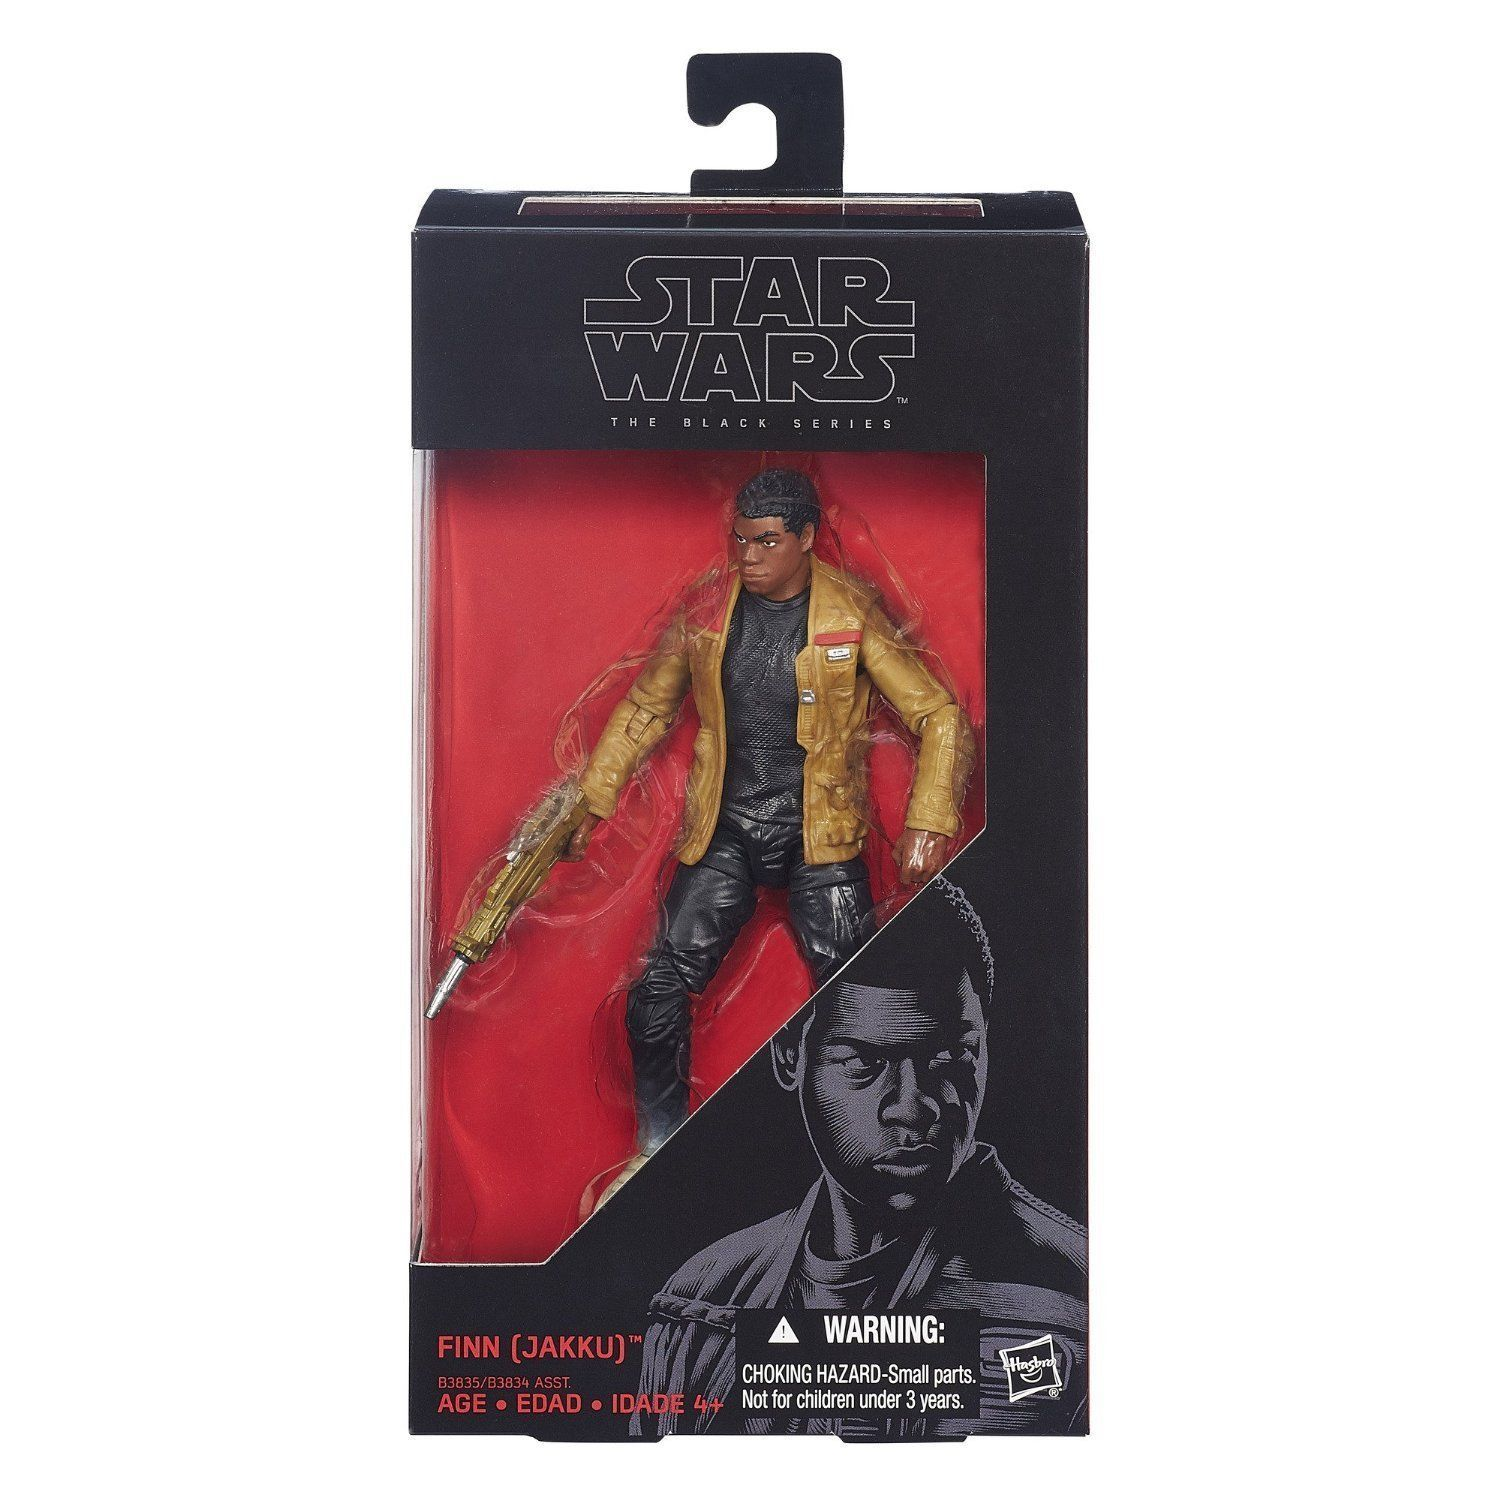 Image 3 of Star Wars The Black Series 6-Inch Action Figure First Order Finn (Jakku)